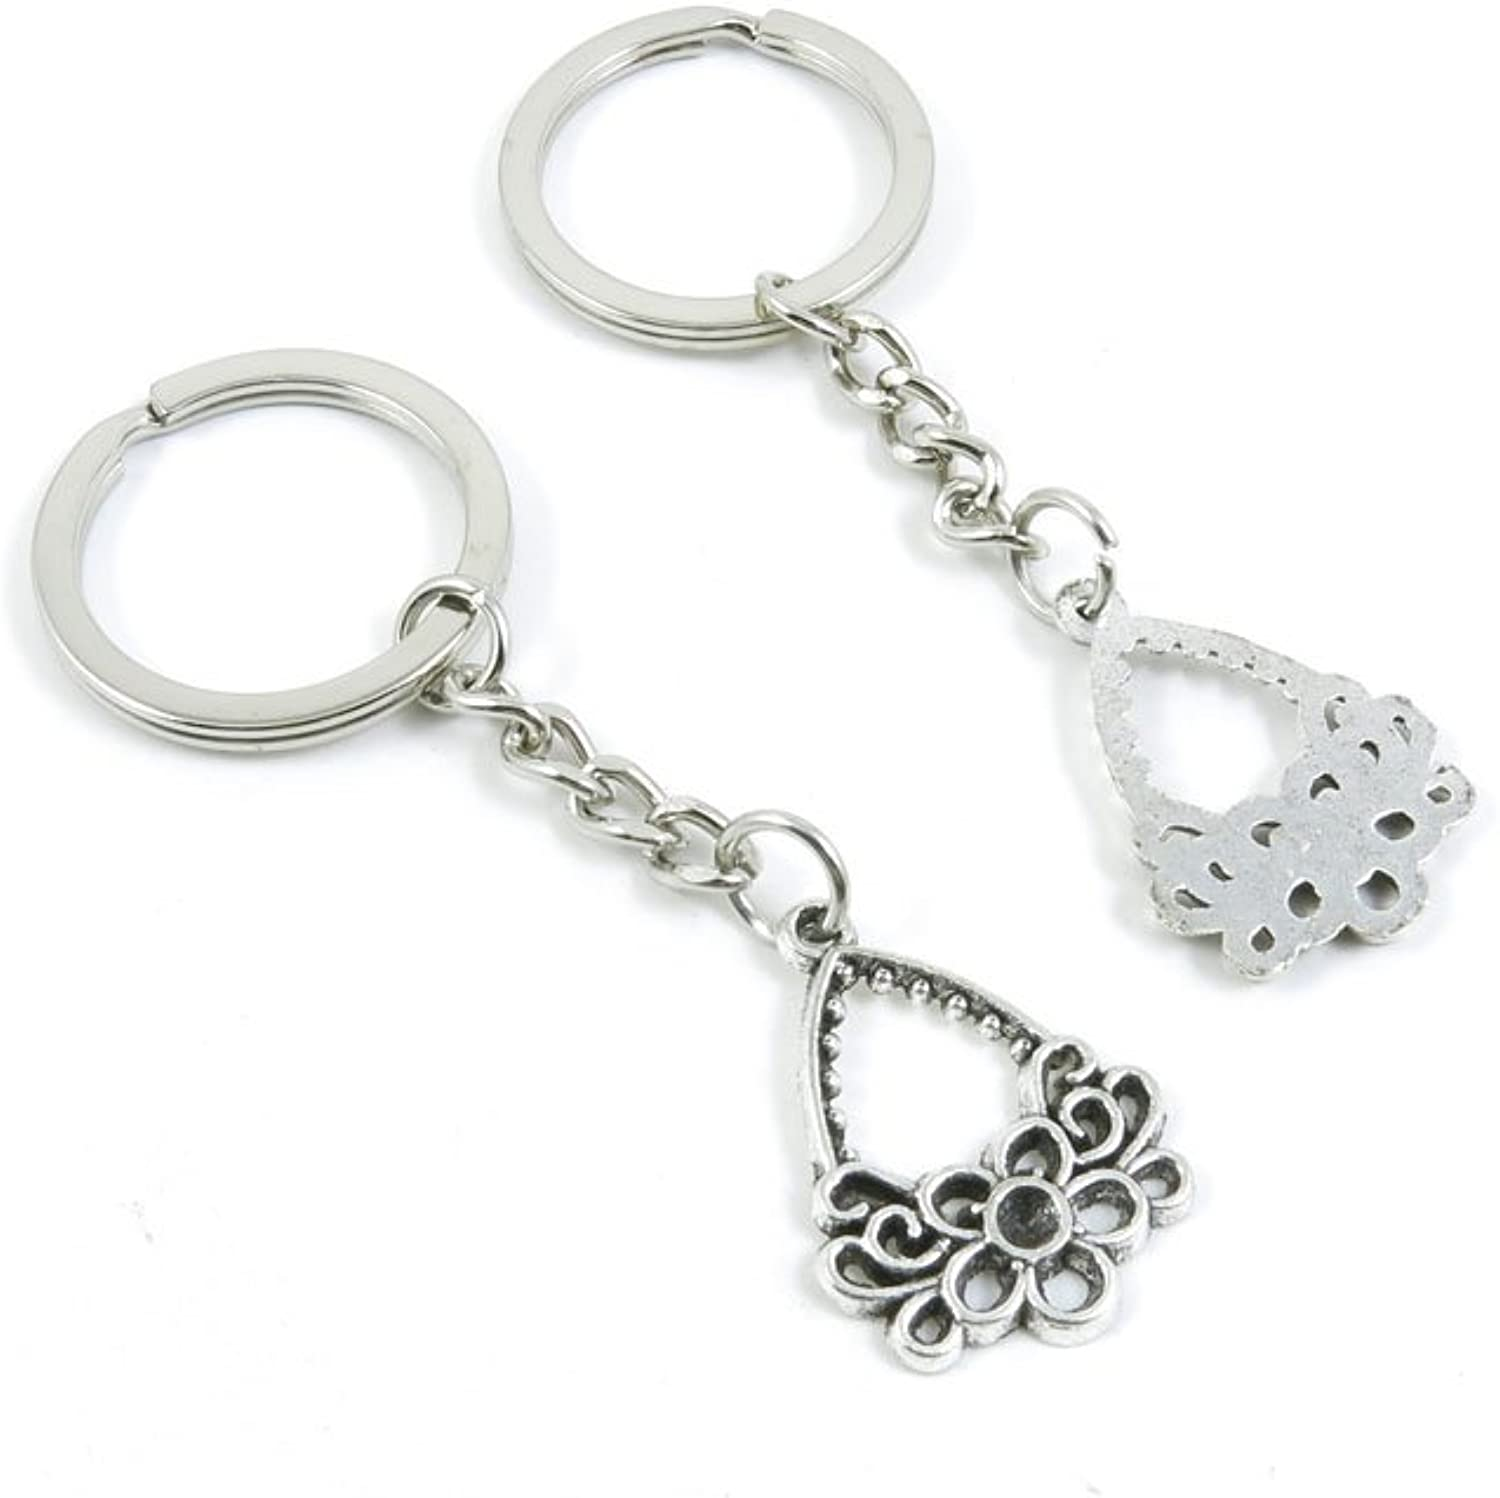 210 Pieces Fashion Jewelry Keyring Keychain Door Car Key Tag Ring Chain Supplier Supply Wholesale Bulk Lots W1VV6 Earring Basket Connector